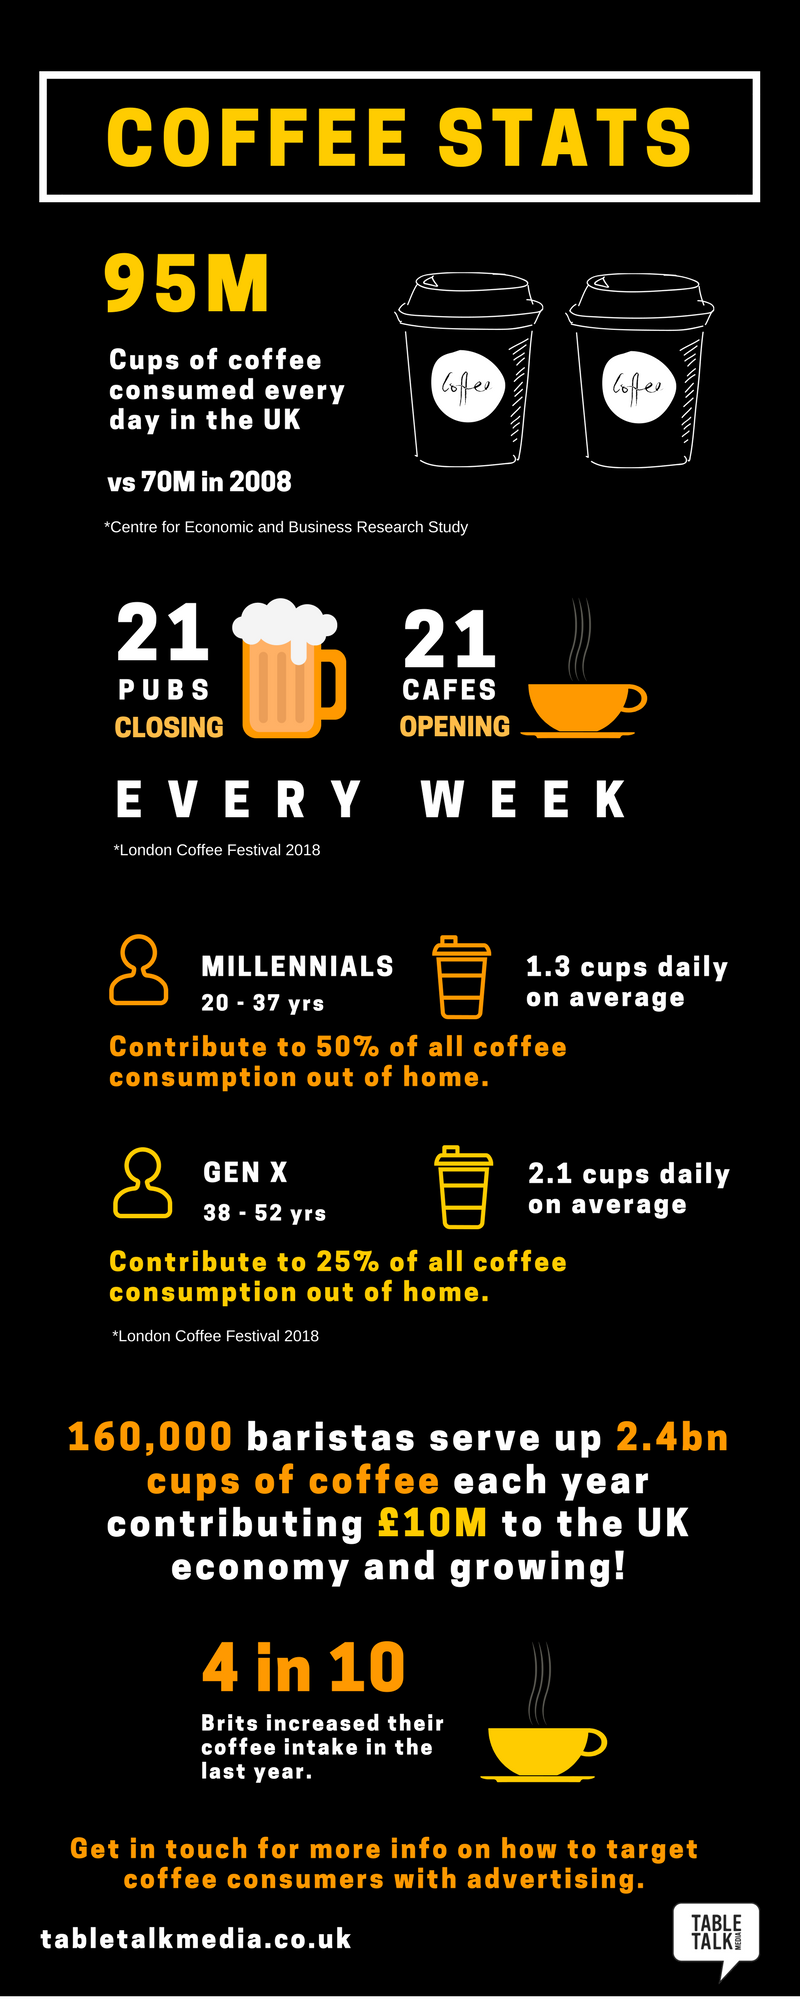 Tabletalk Media Coffee Stats Infographic